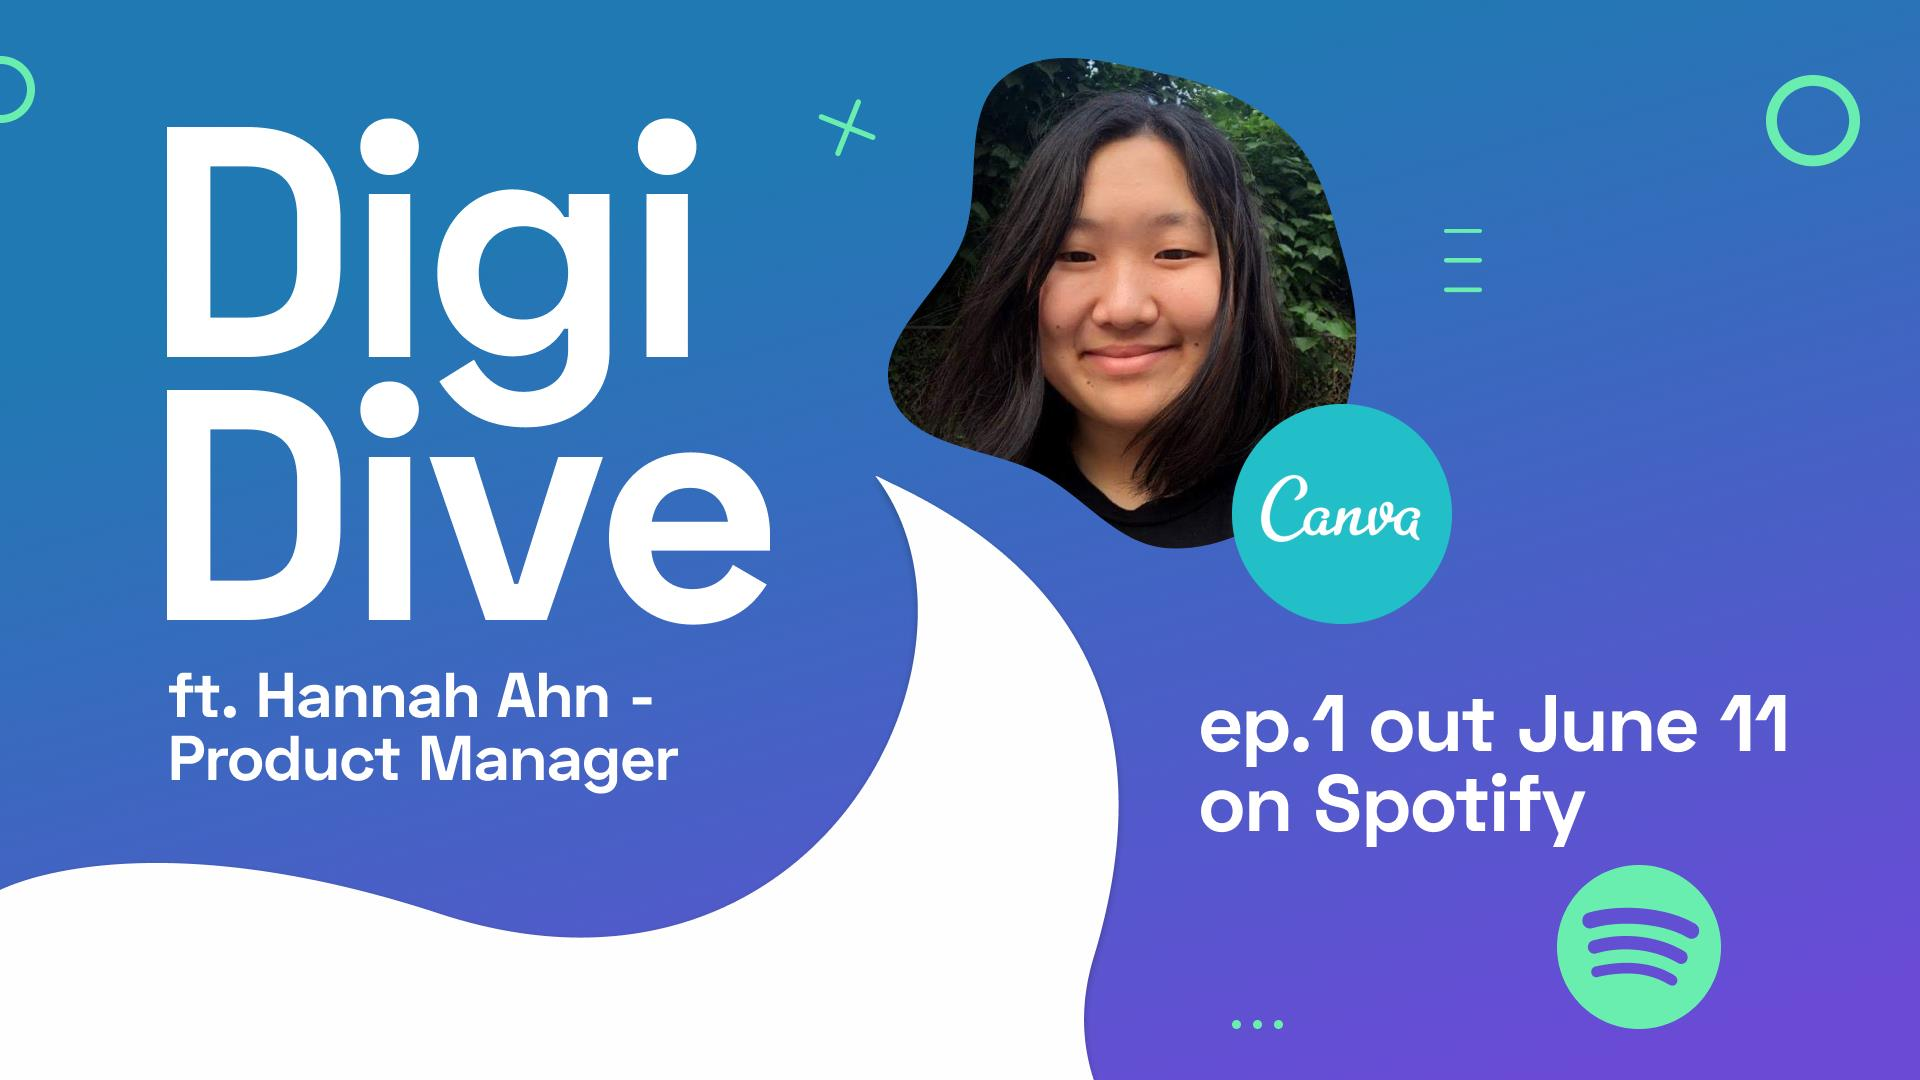 DigiDive Episode #1: Product Management with Hannah Ahn